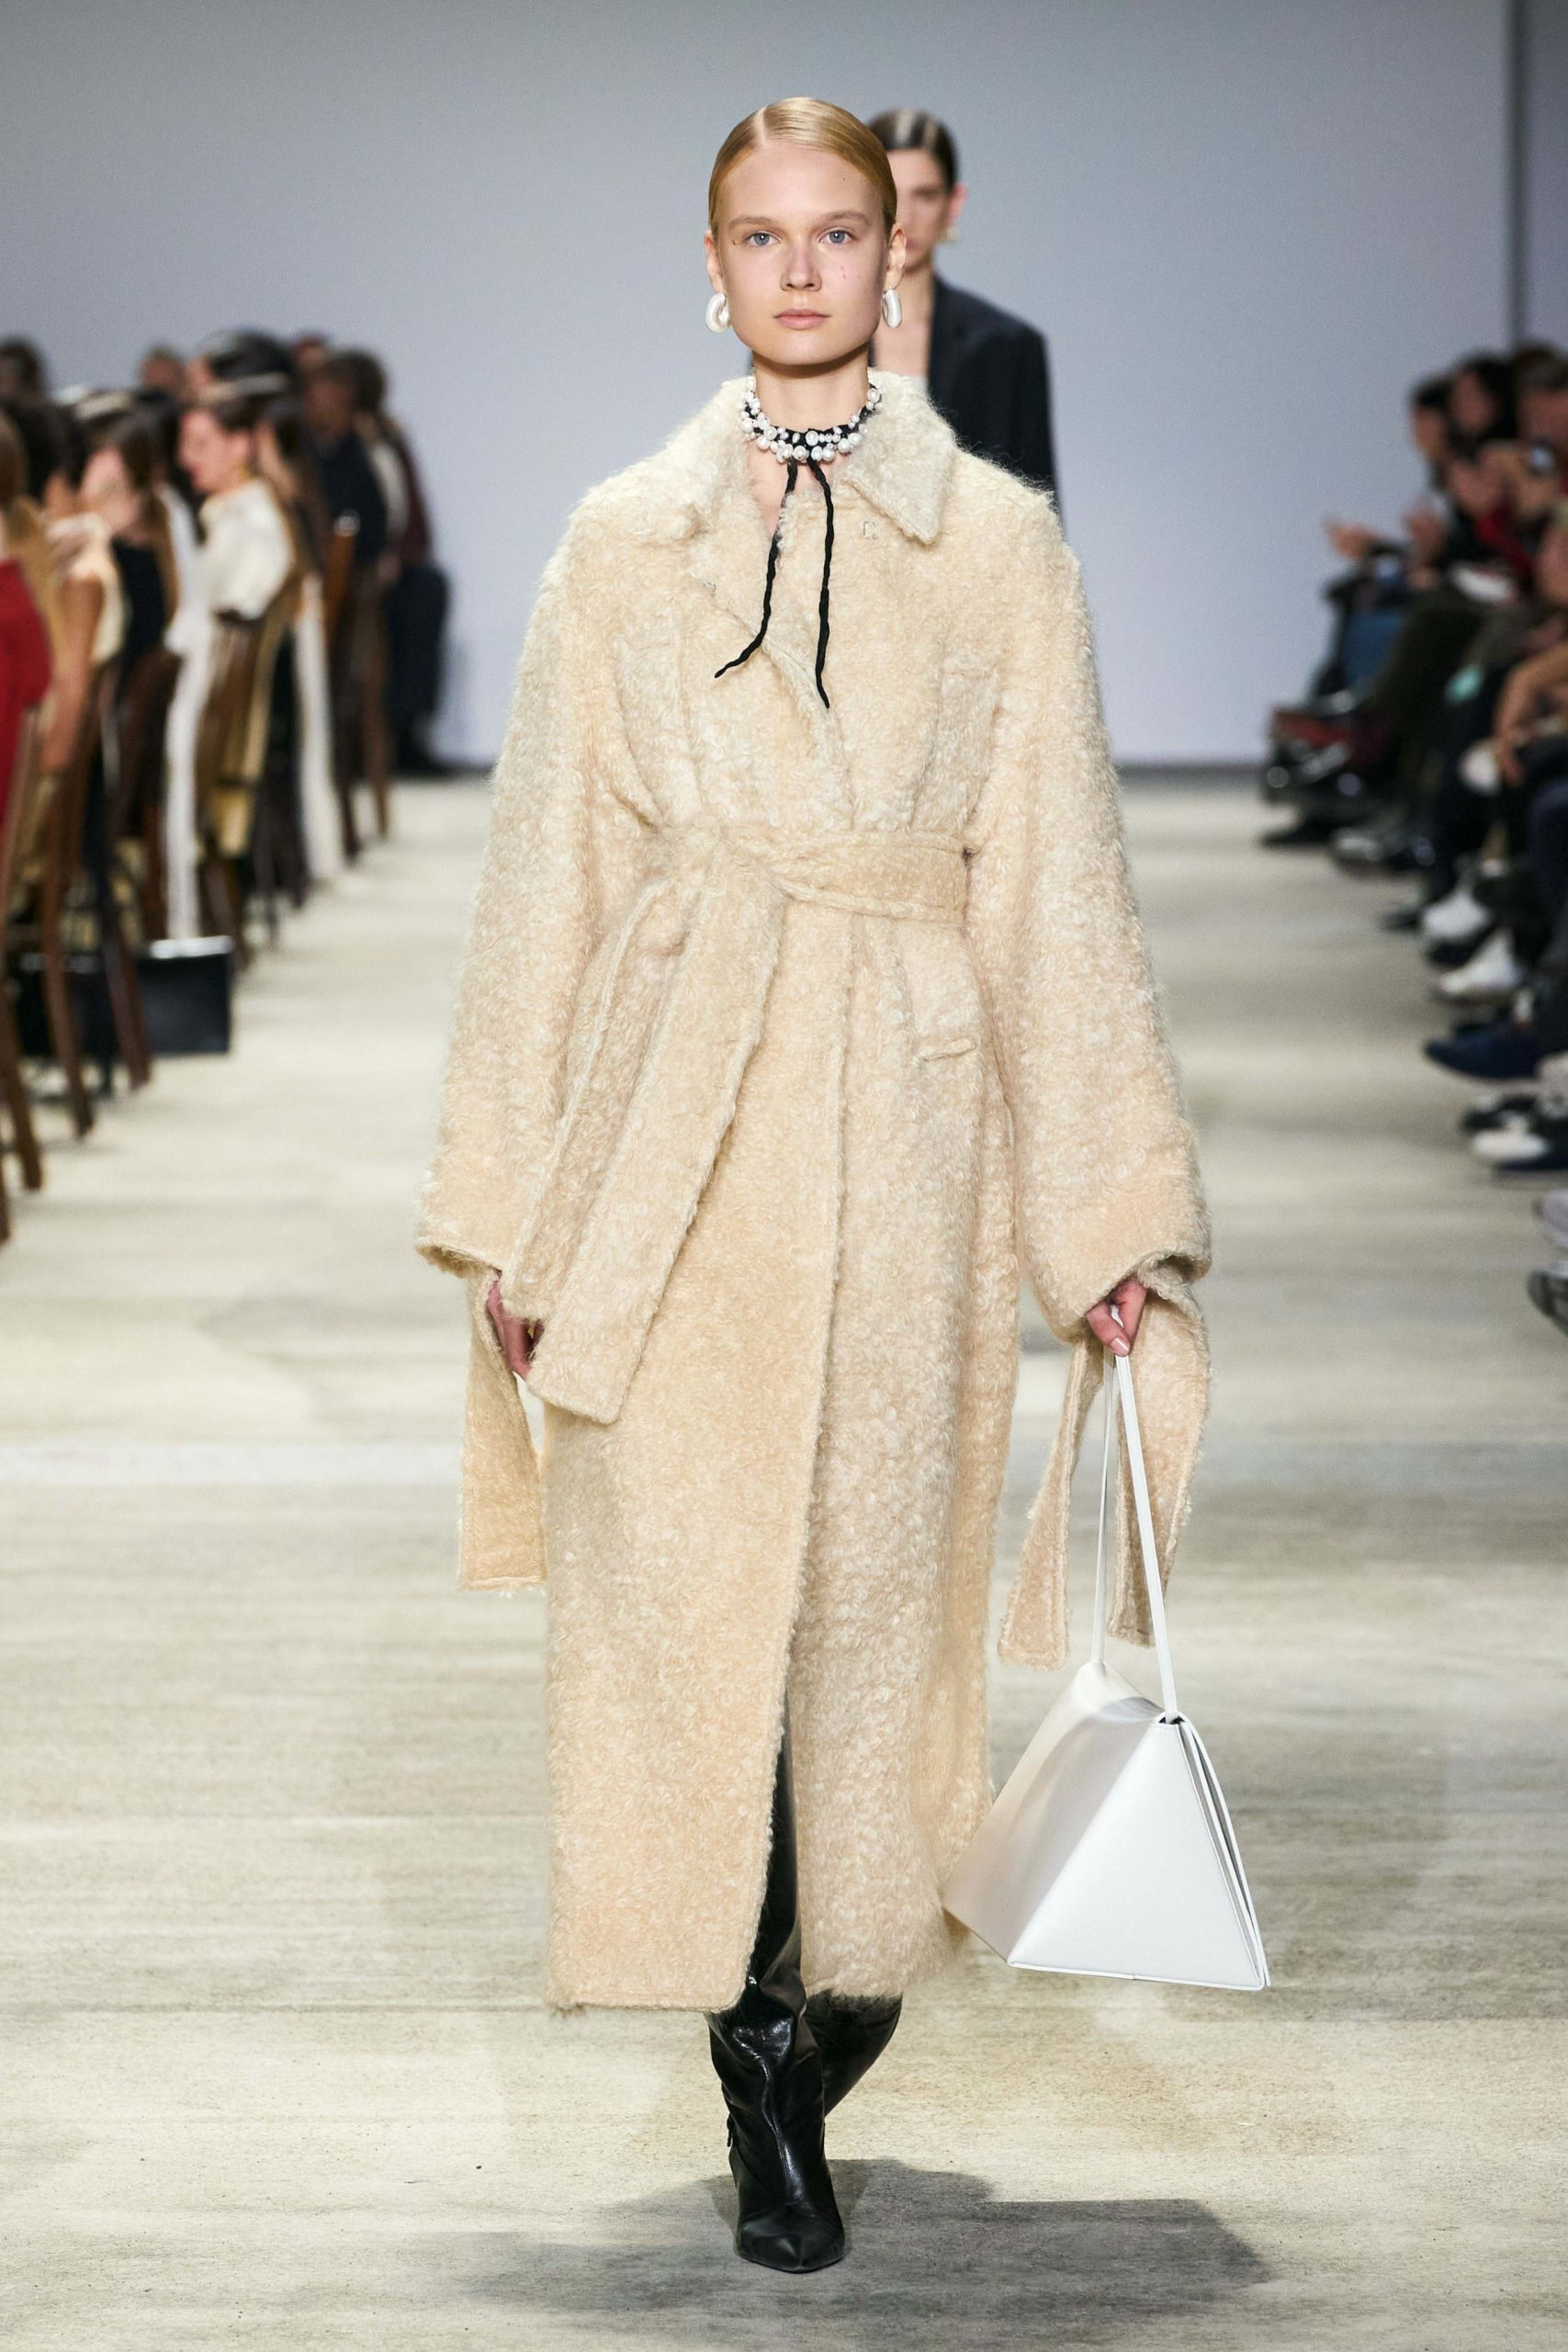 Jil Sander Fall 2020 trends runway coverage Ready To Wear Vogue shaggy